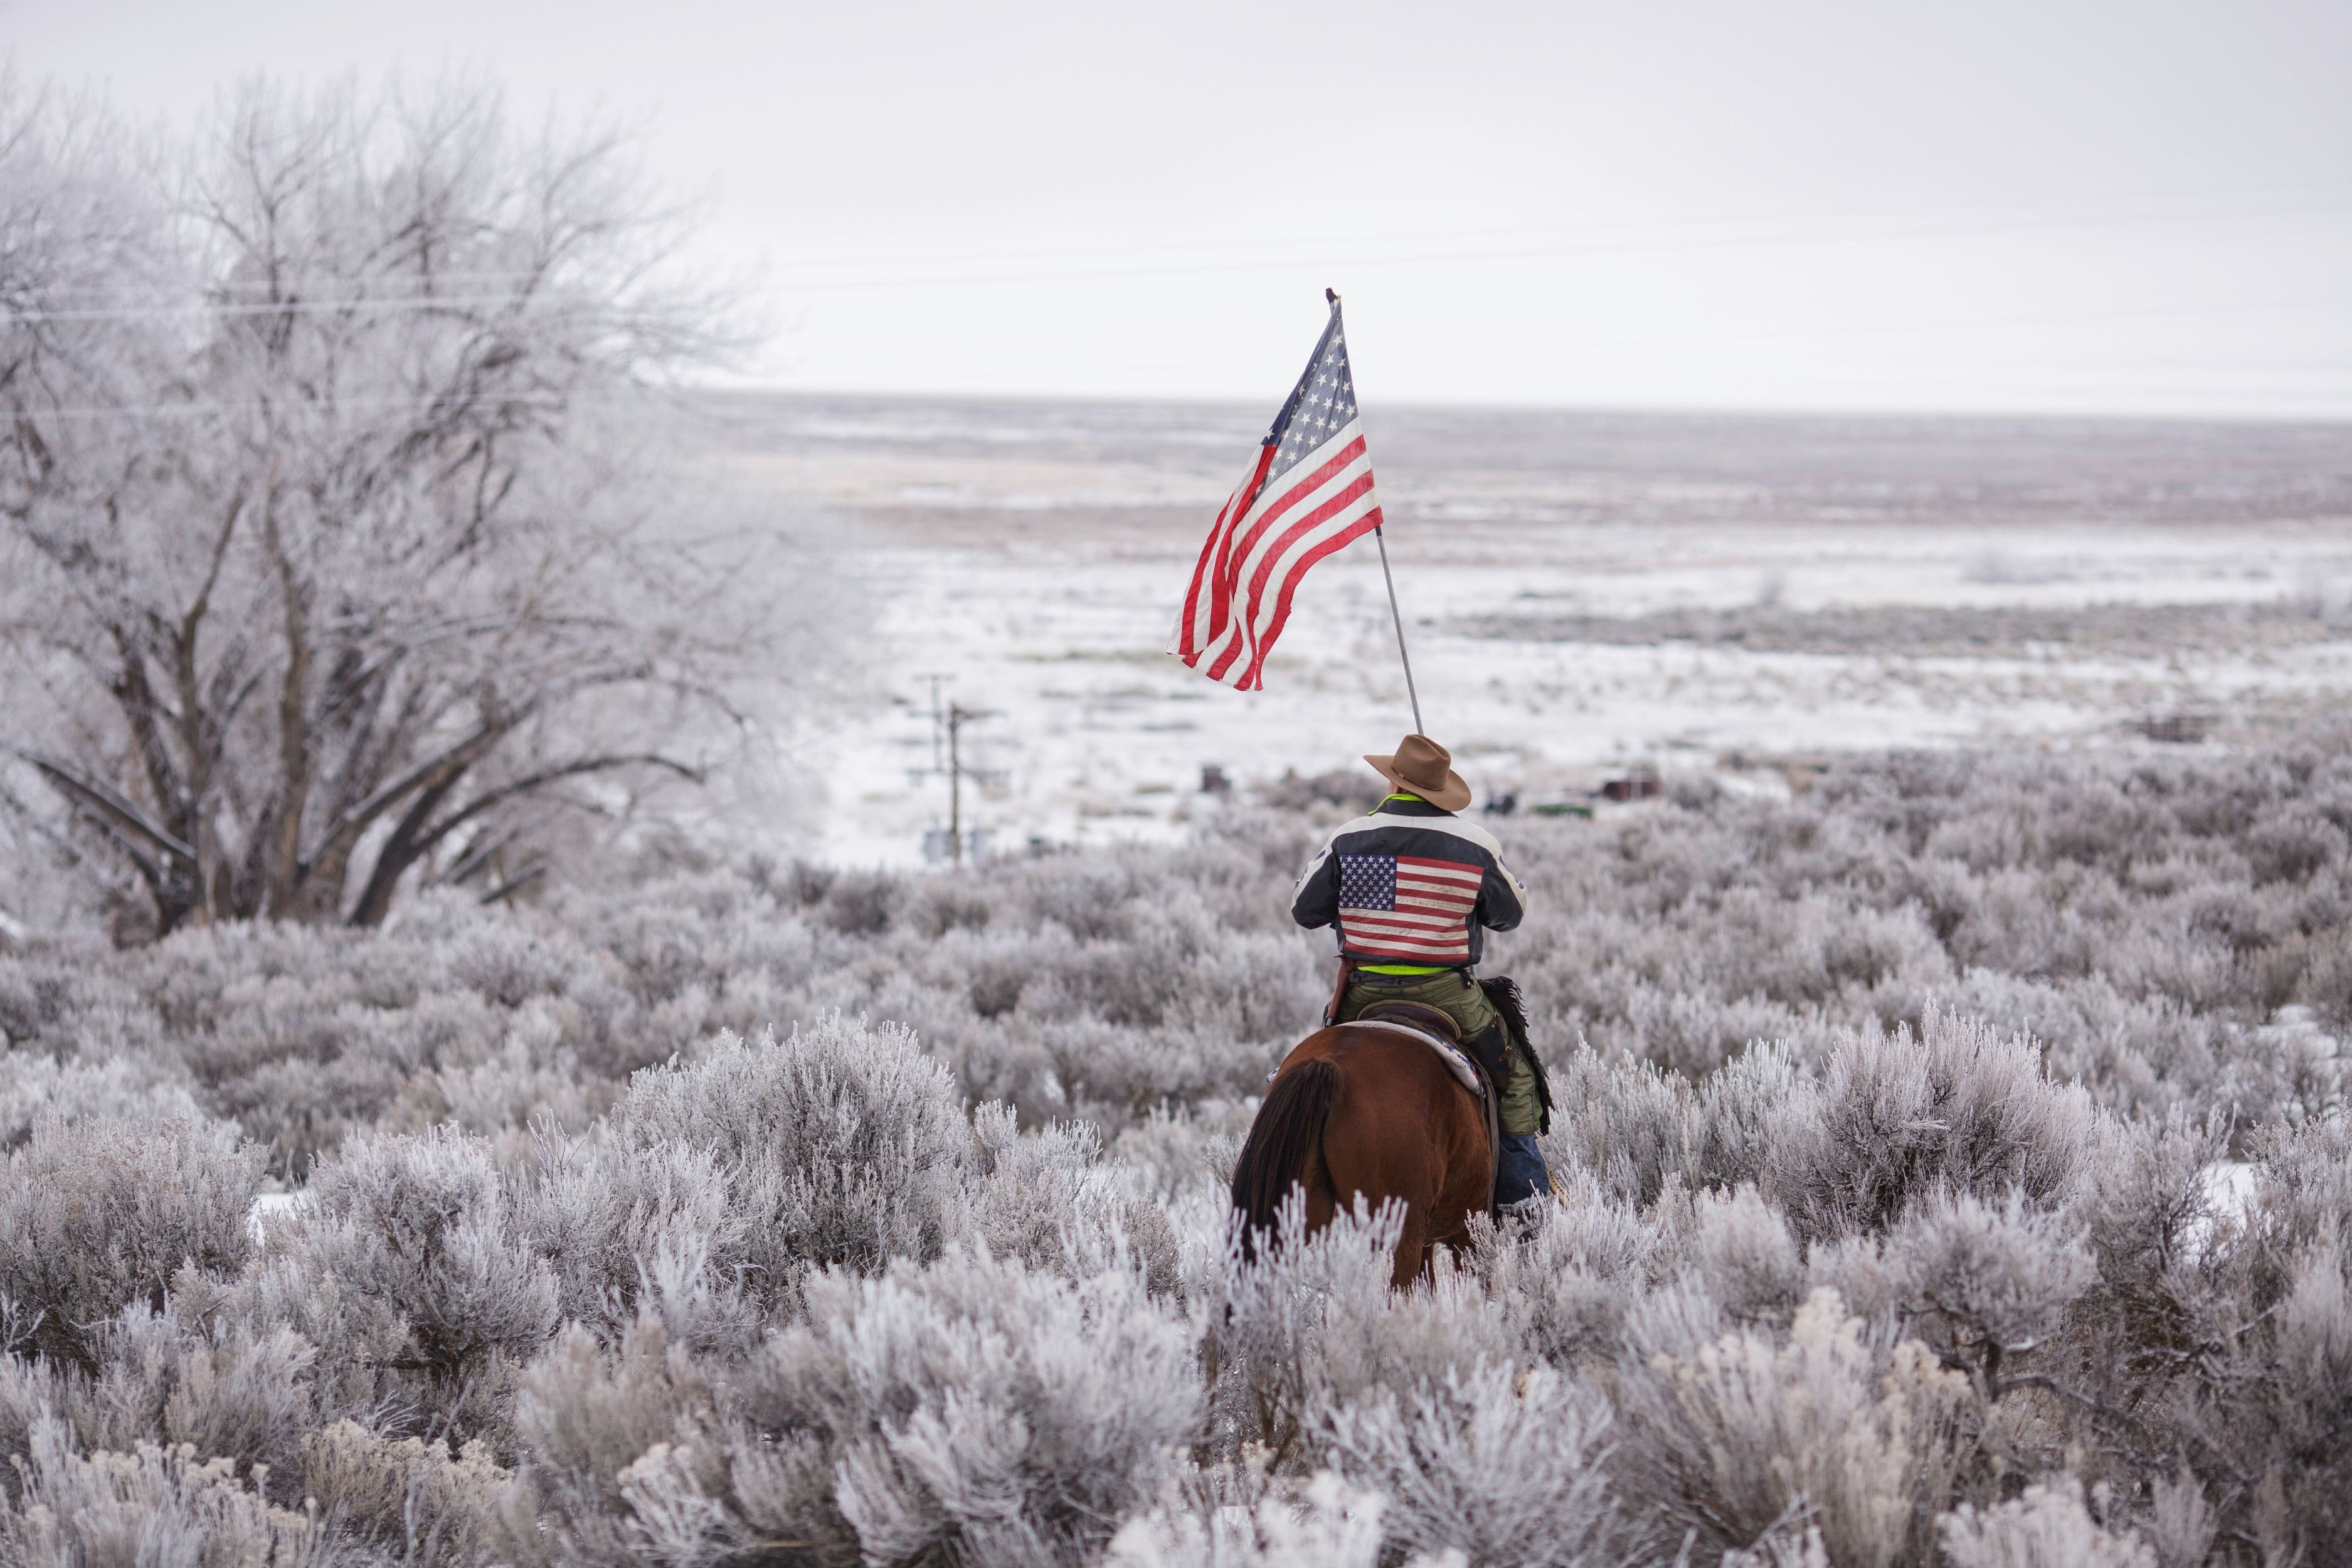 A man rides a horse at the occupied Malheur National Wildlife Refuge, on the sixth day of the occupation of the federal building, in Burns, Oregon, Jan. 7, 2016.